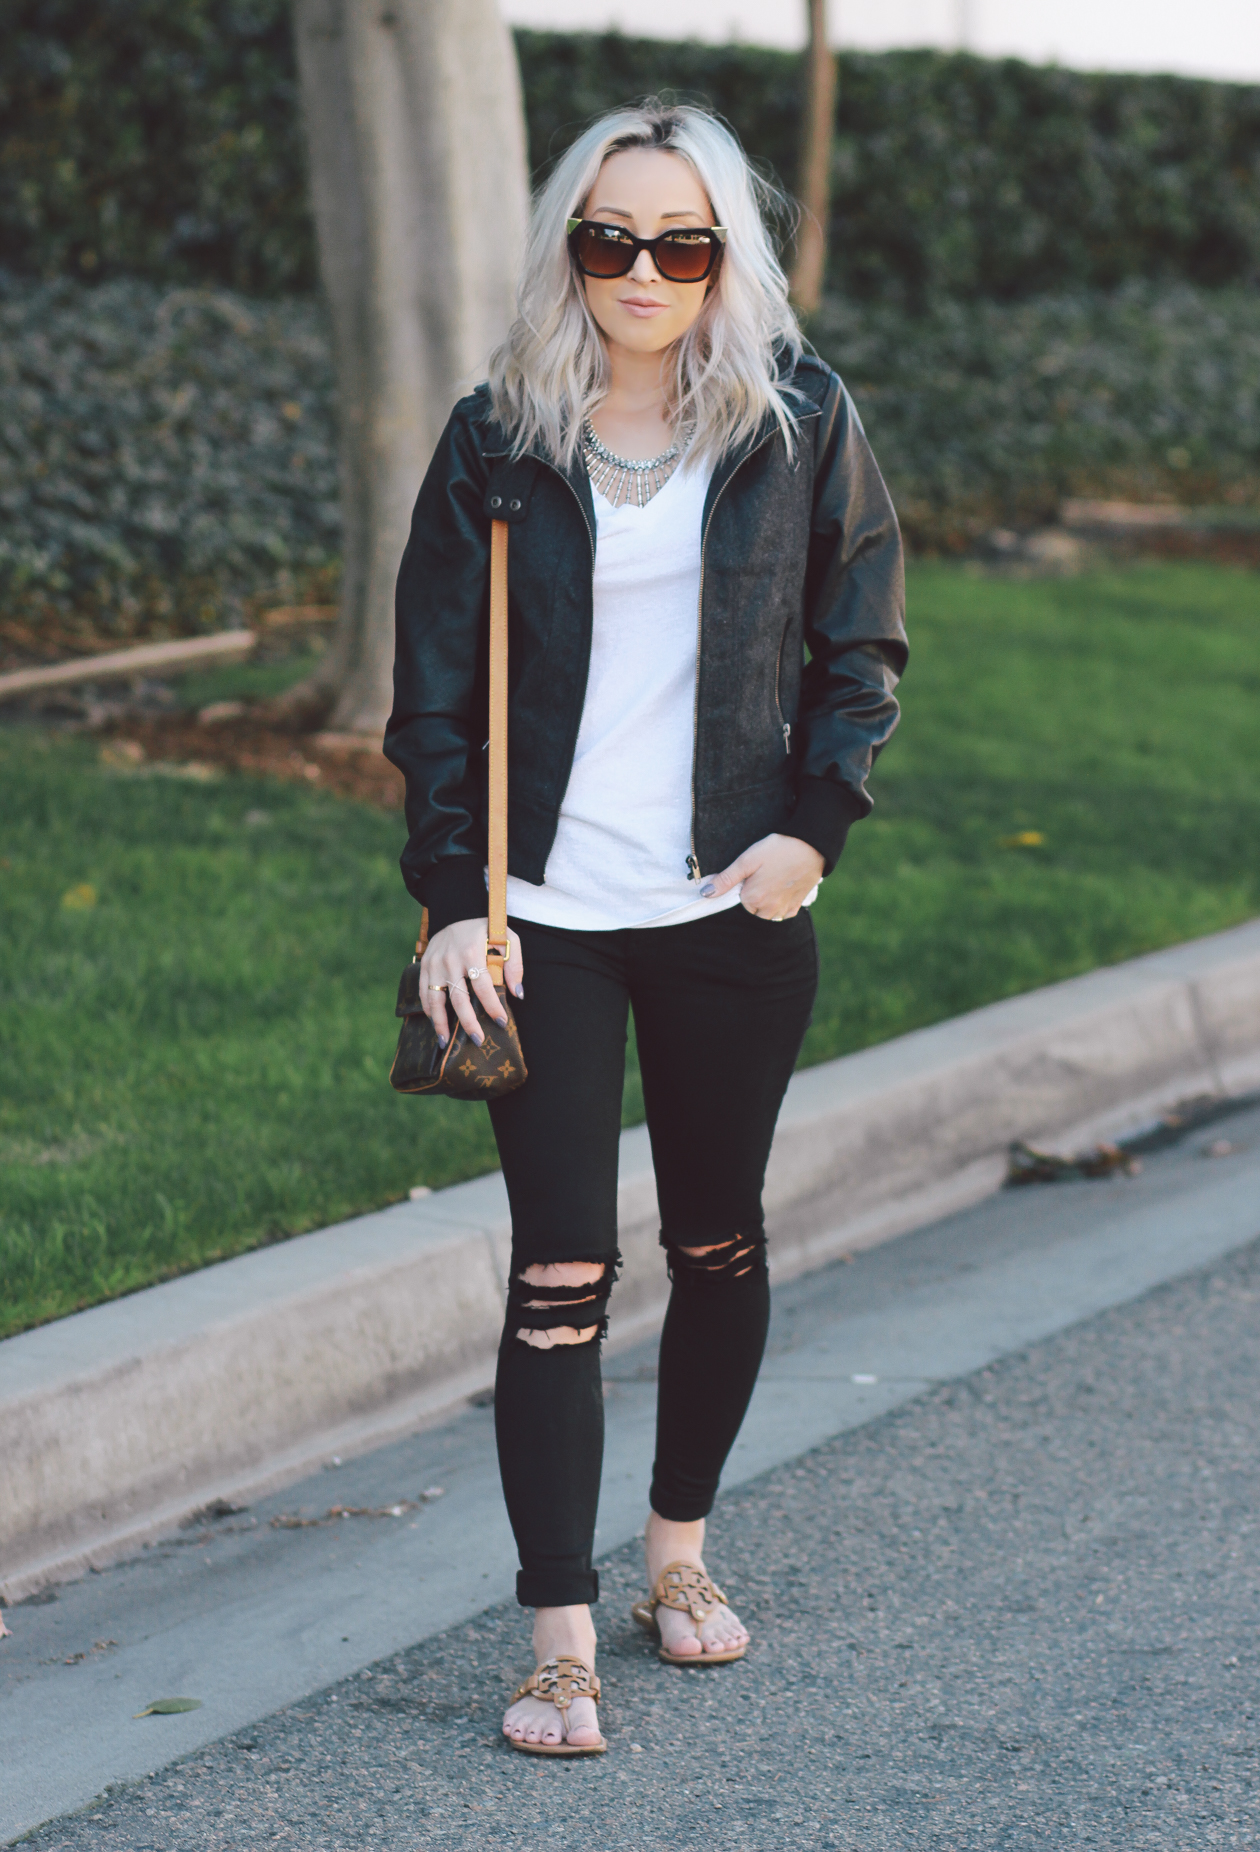 Faux Leather Jacket | Cat Eye Sunglasses | Louis Vuitton crossbody | BlondieintheCity.com